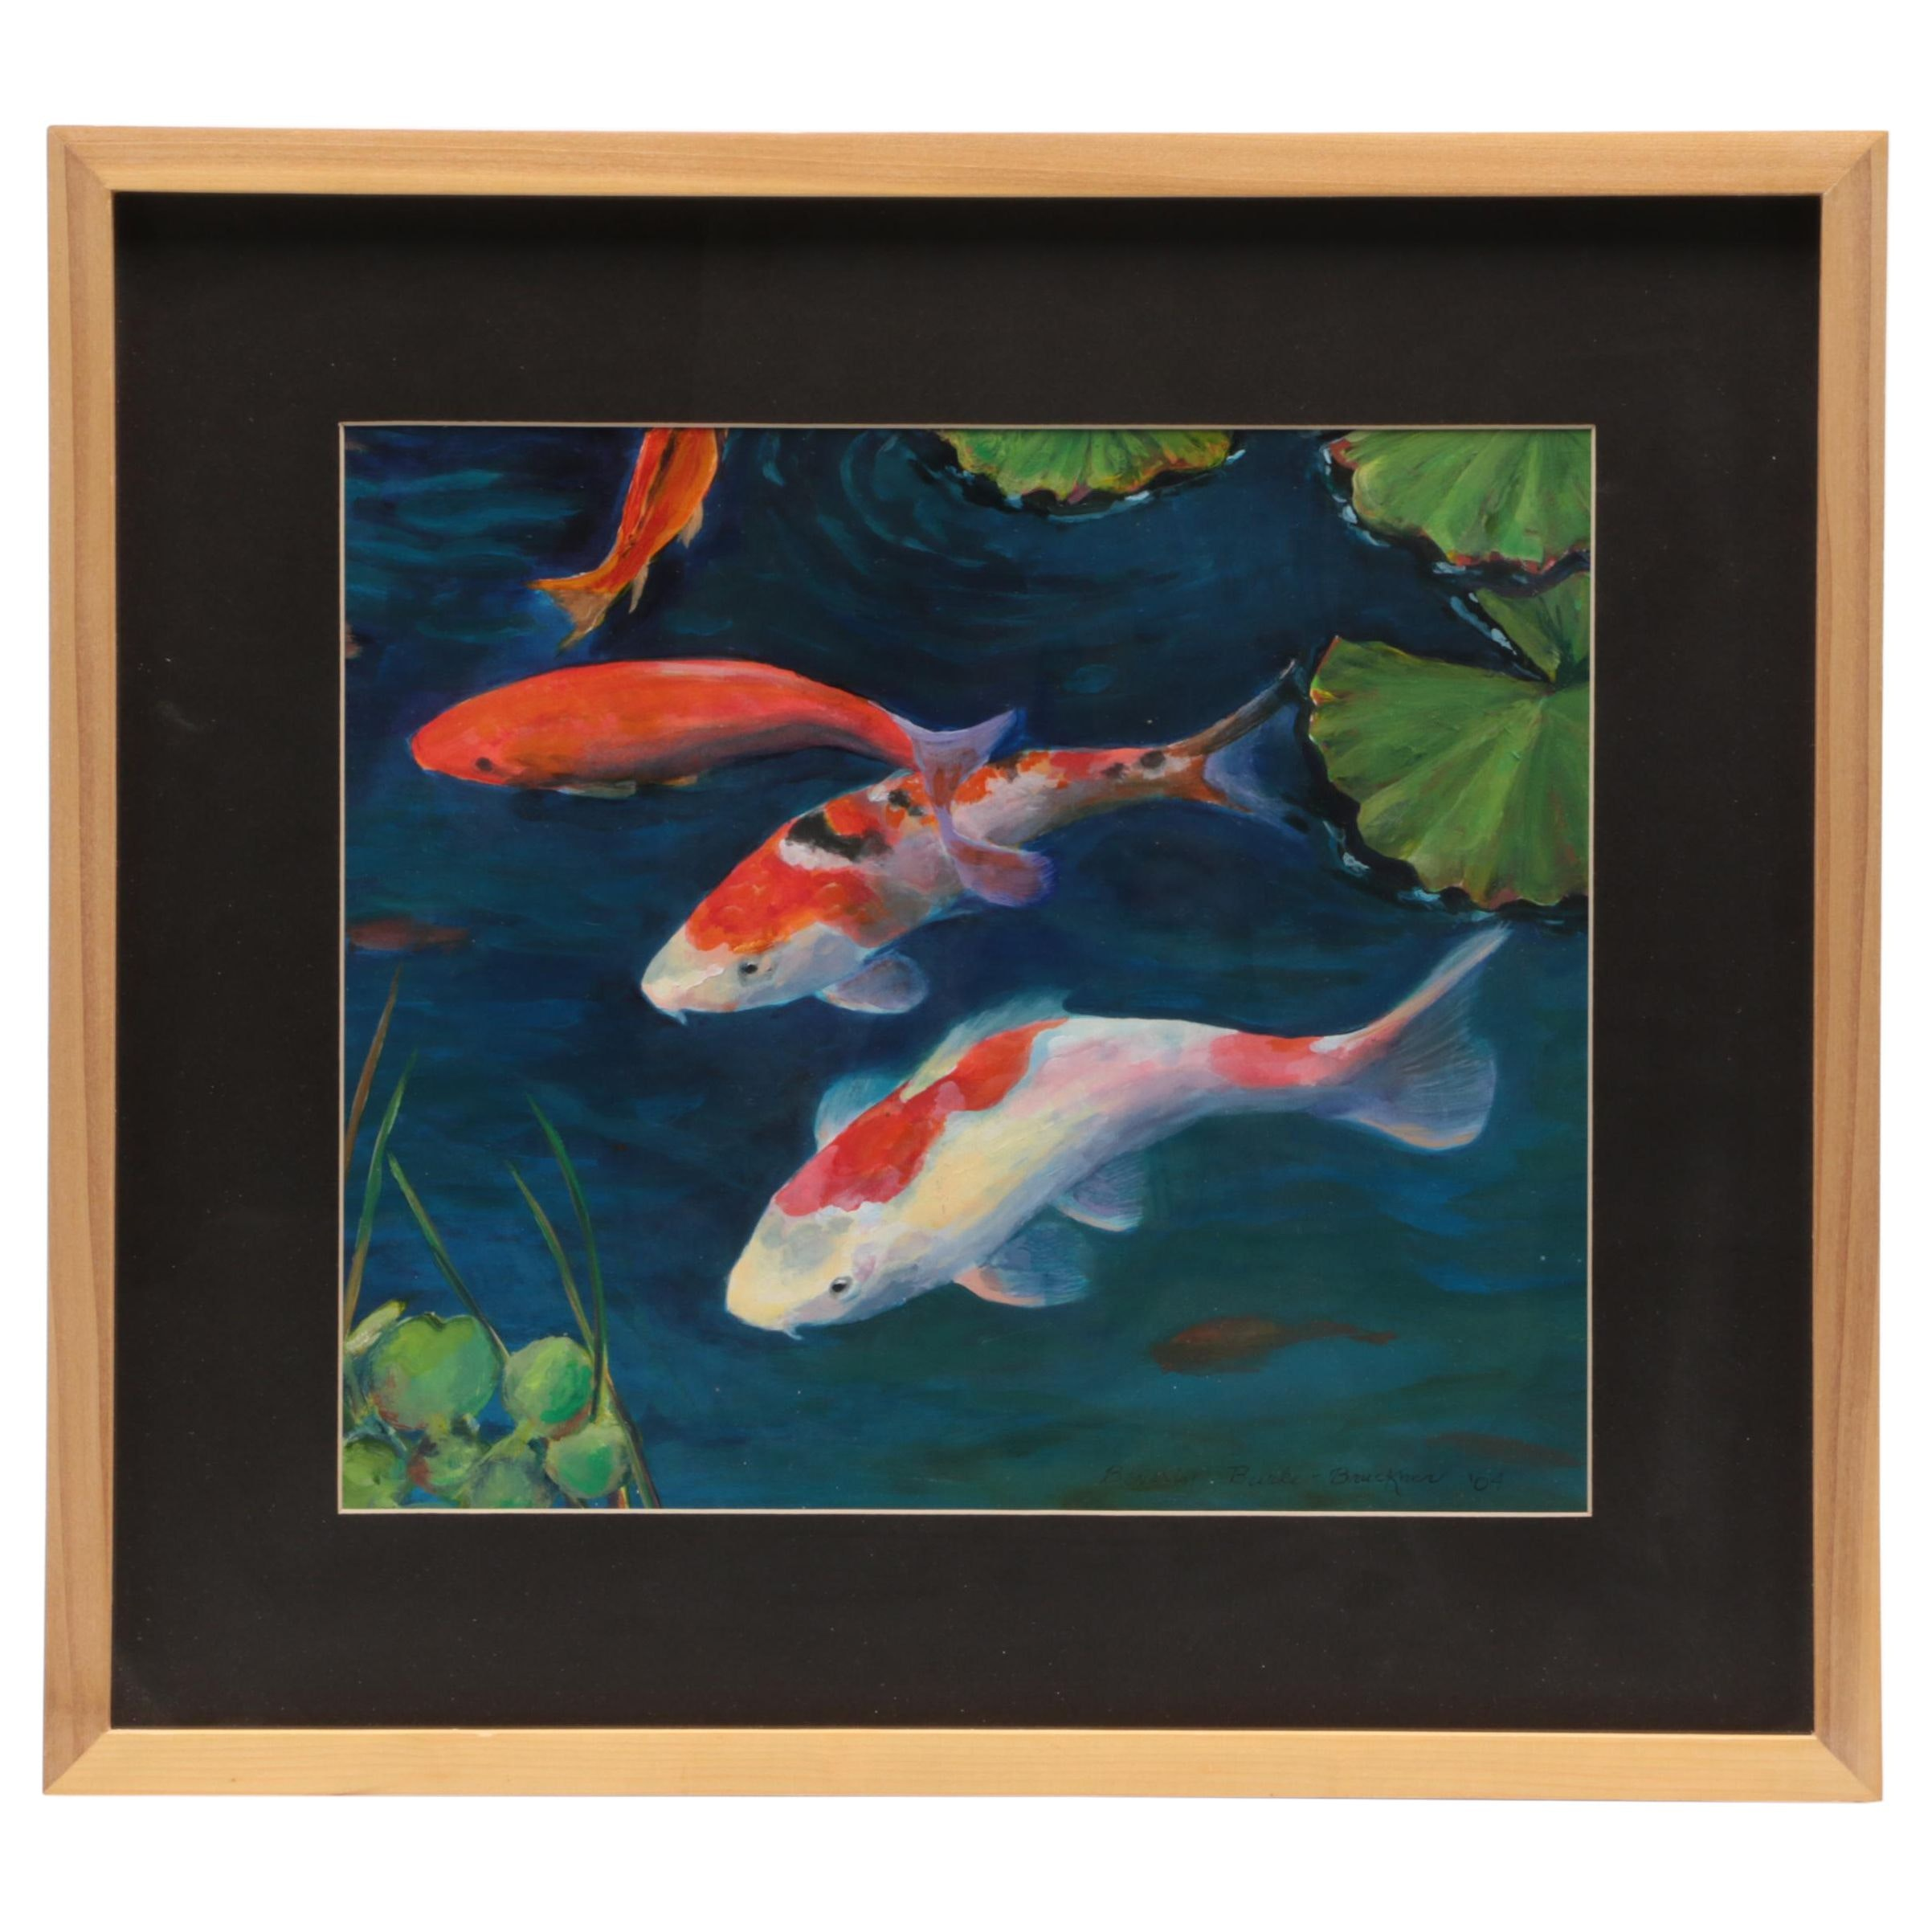 Beverly Burke-Bruckner Gouache Painting of Koi Fish